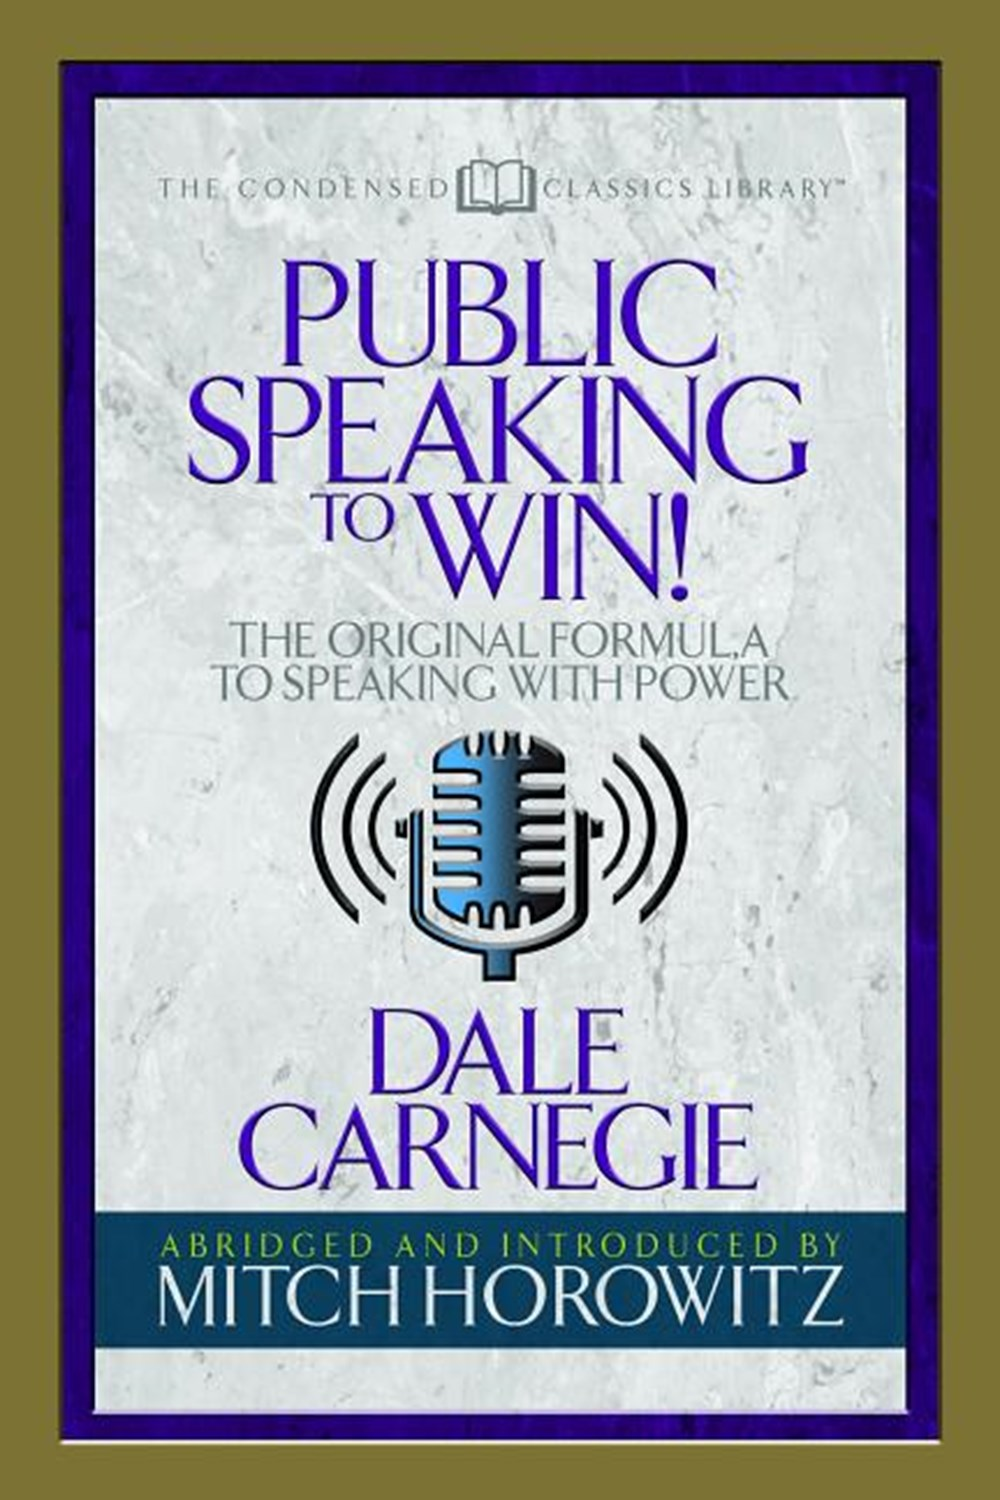 Public Speaking to Win (Condensed Classics) The Original Formula to Speaking with Power